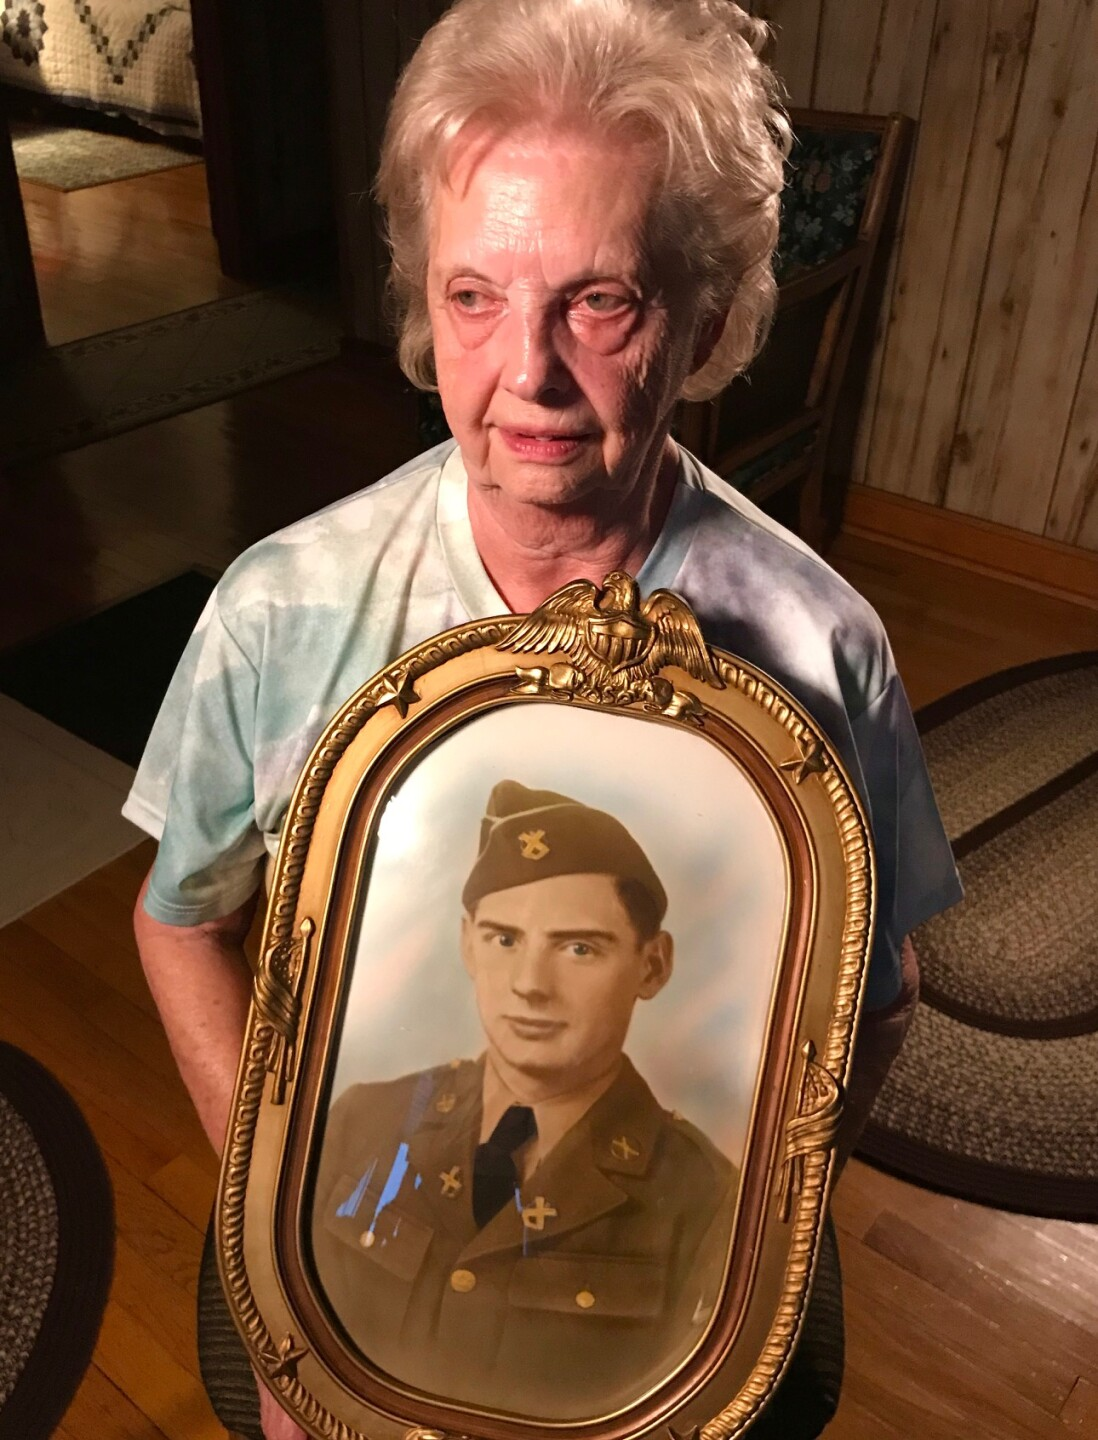 Photos: Bedford Boys Tribute center honors Virginia town's sacrifices toWWII